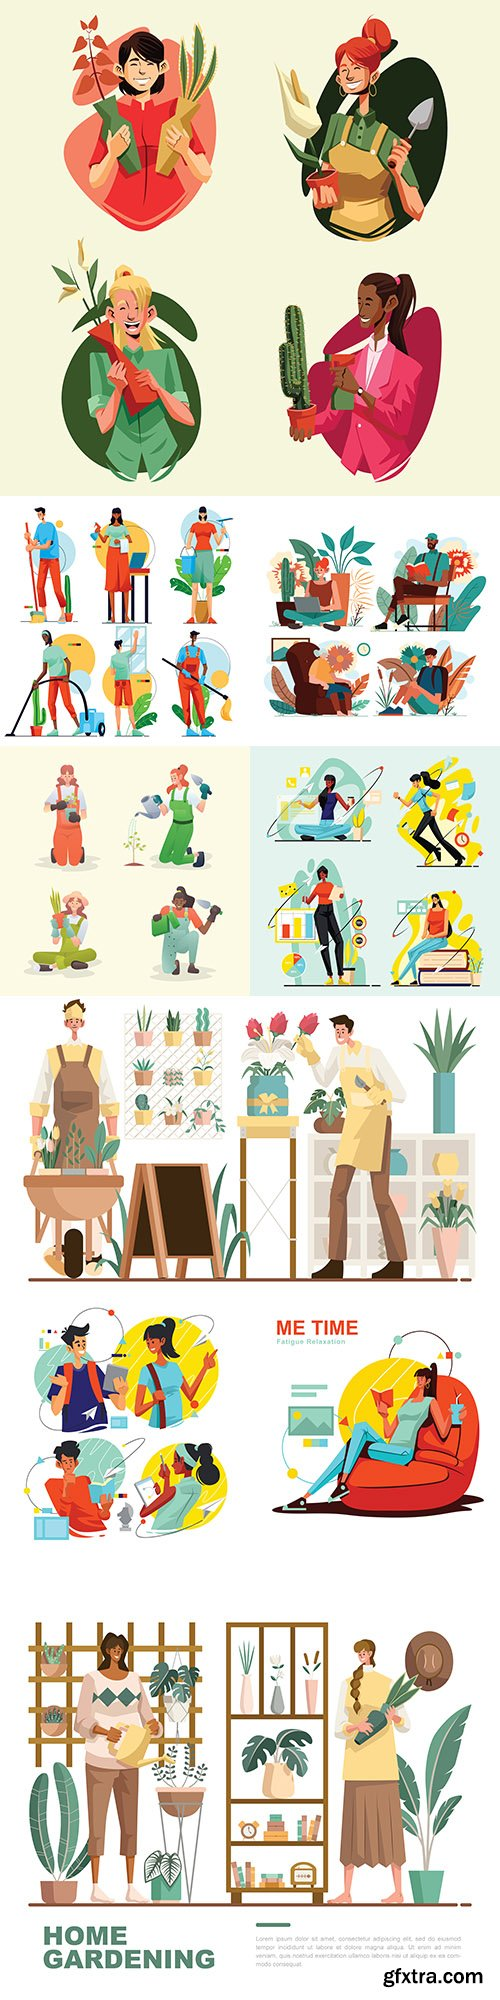 People lifestyle and work illustration collection